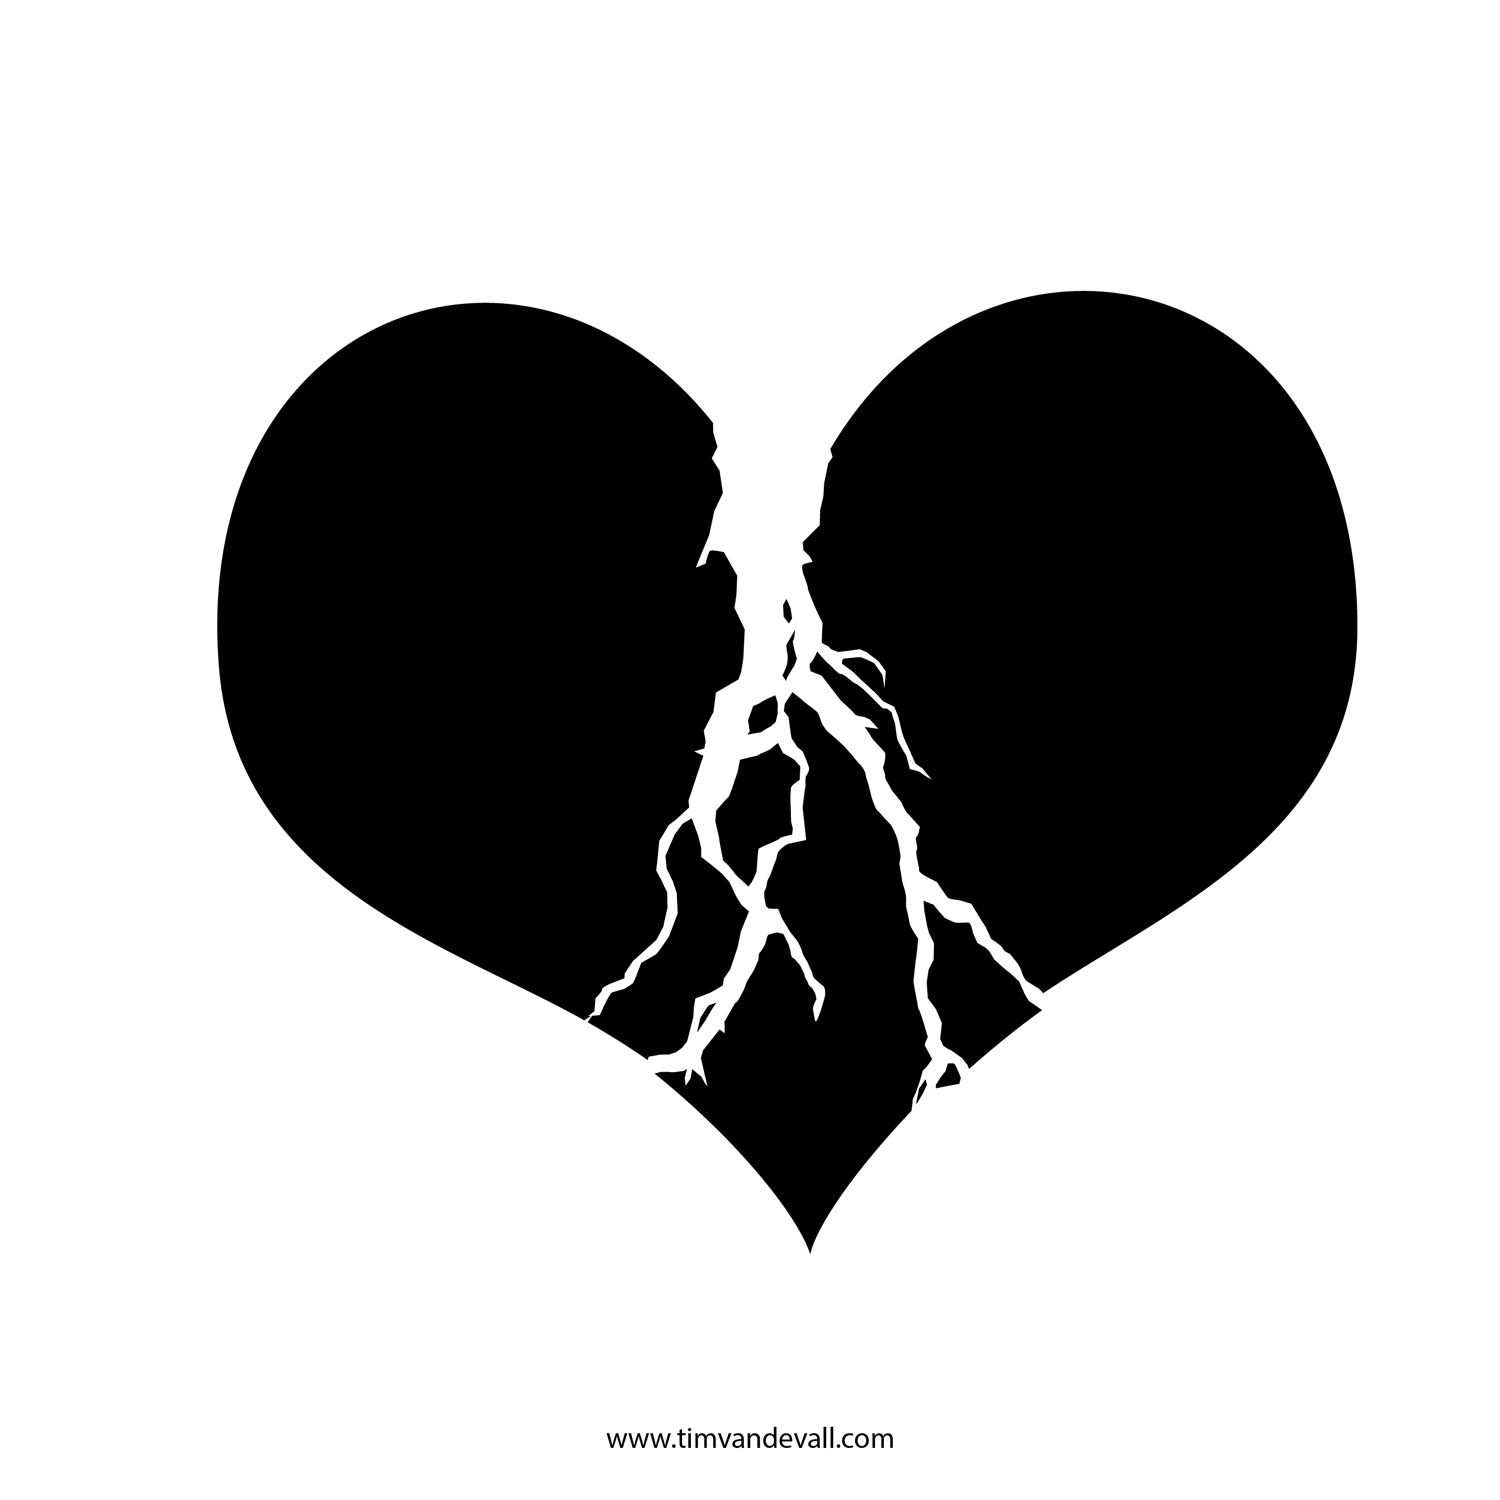 Free Broken Heart Cliparts, Download Free Clip Art, Free Clip Art on.